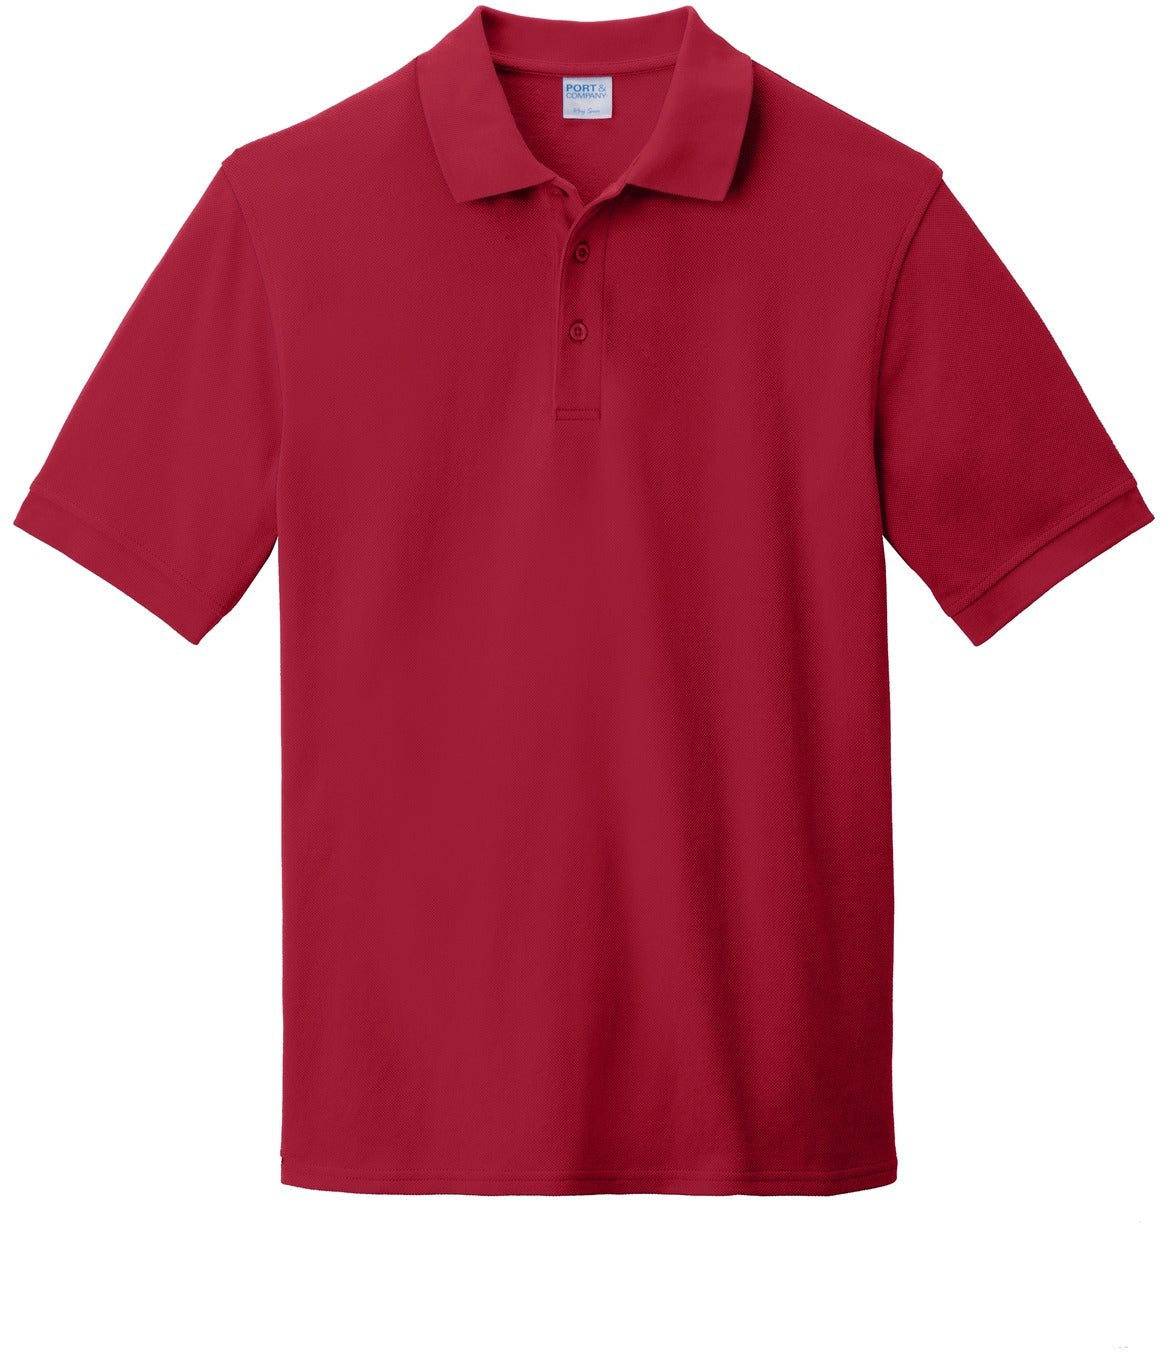 Port Authority-Ring Spun Pique Polo-S-Red-Thread Logic